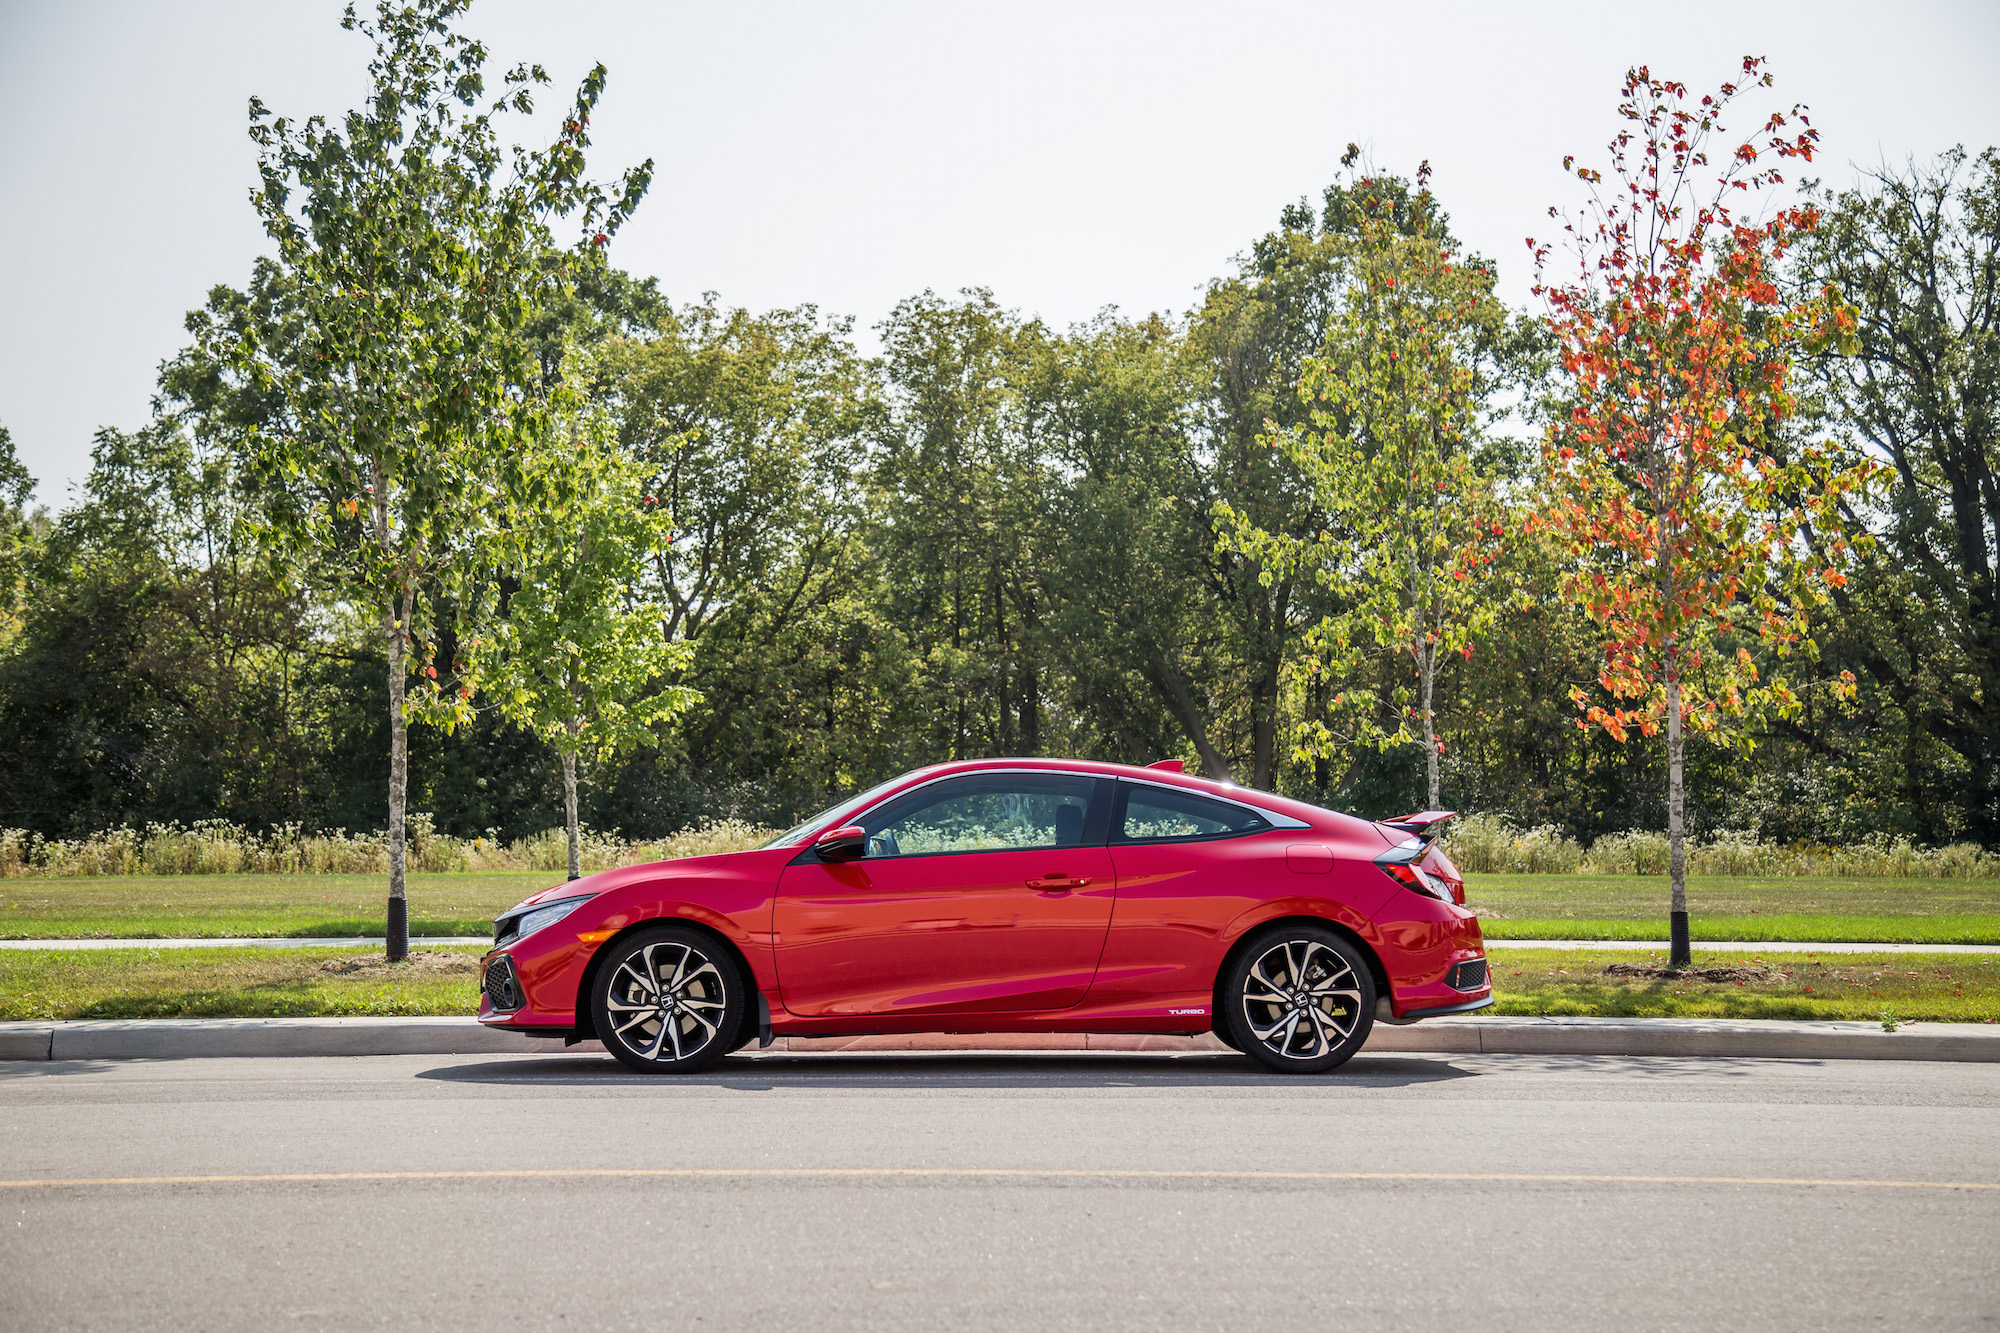 Review: 2017 Honda Civic Si Coupe | Canadian Auto Review